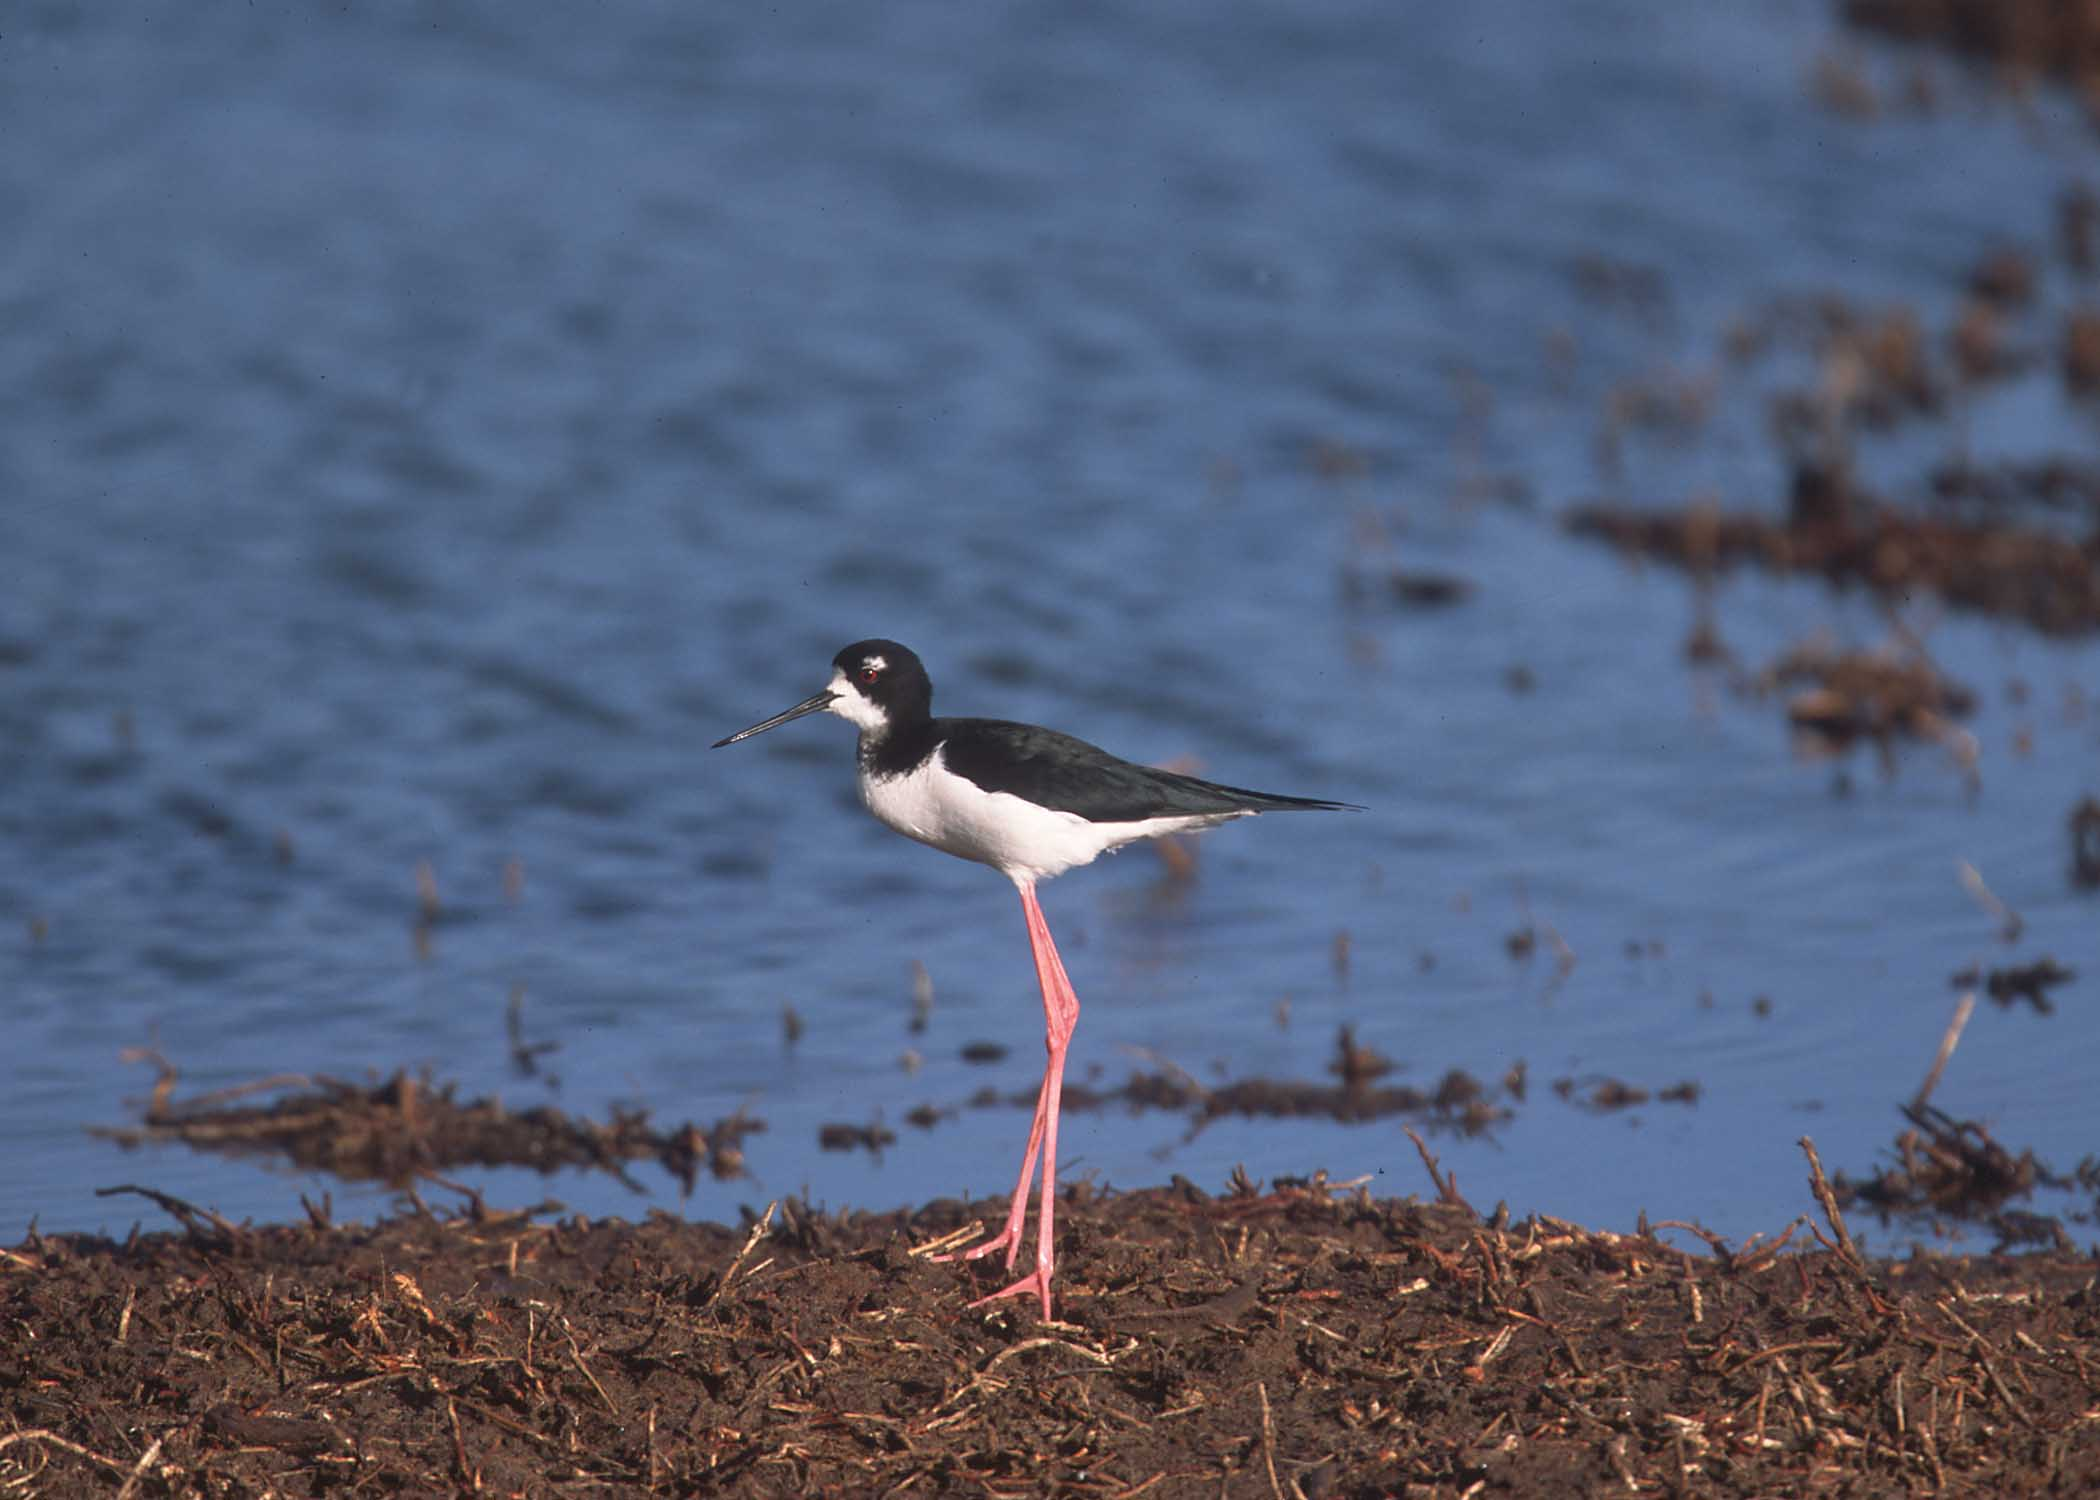 Shore bird with long slender red legs wading along a wetland shoreline